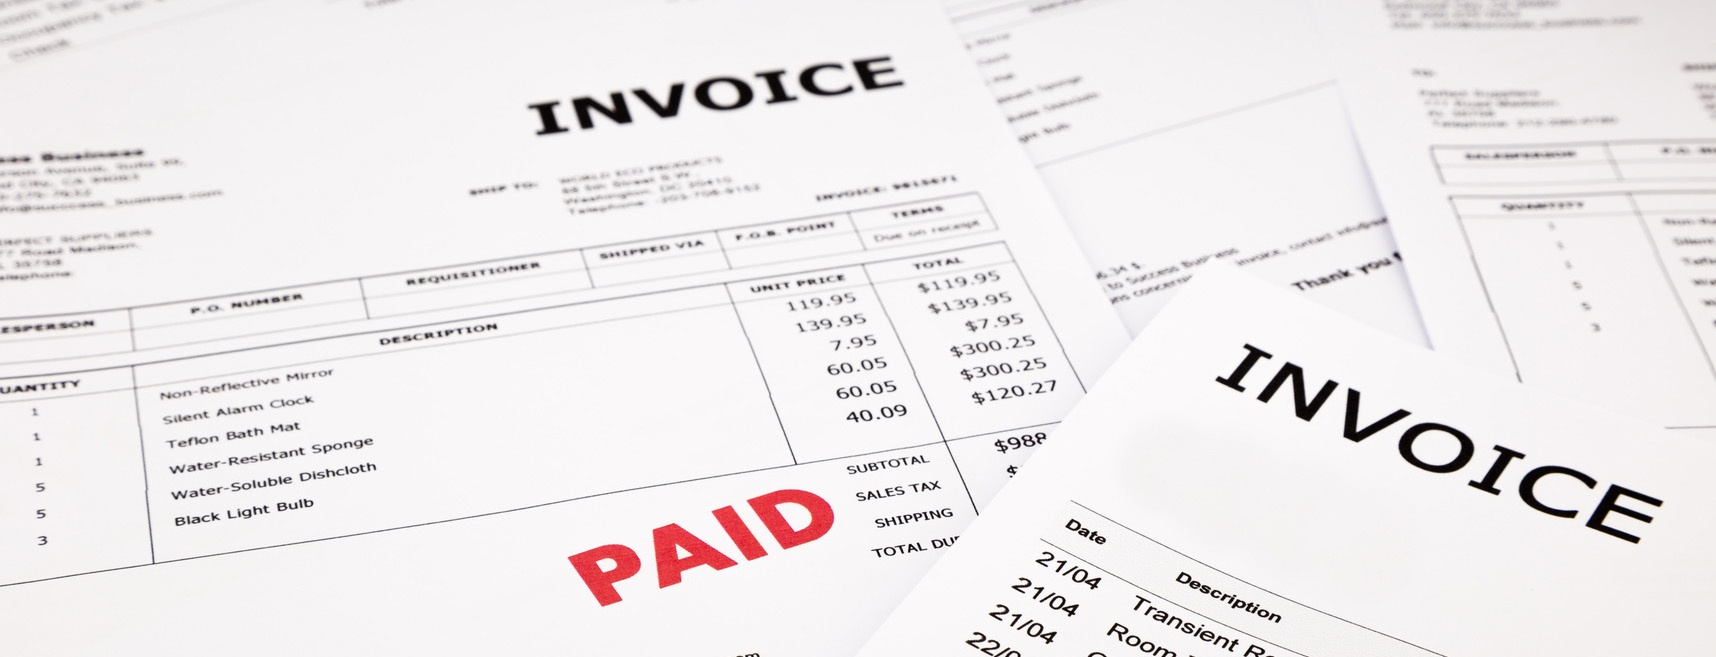 6 invoicing tips for faster payments the pandadoc blog